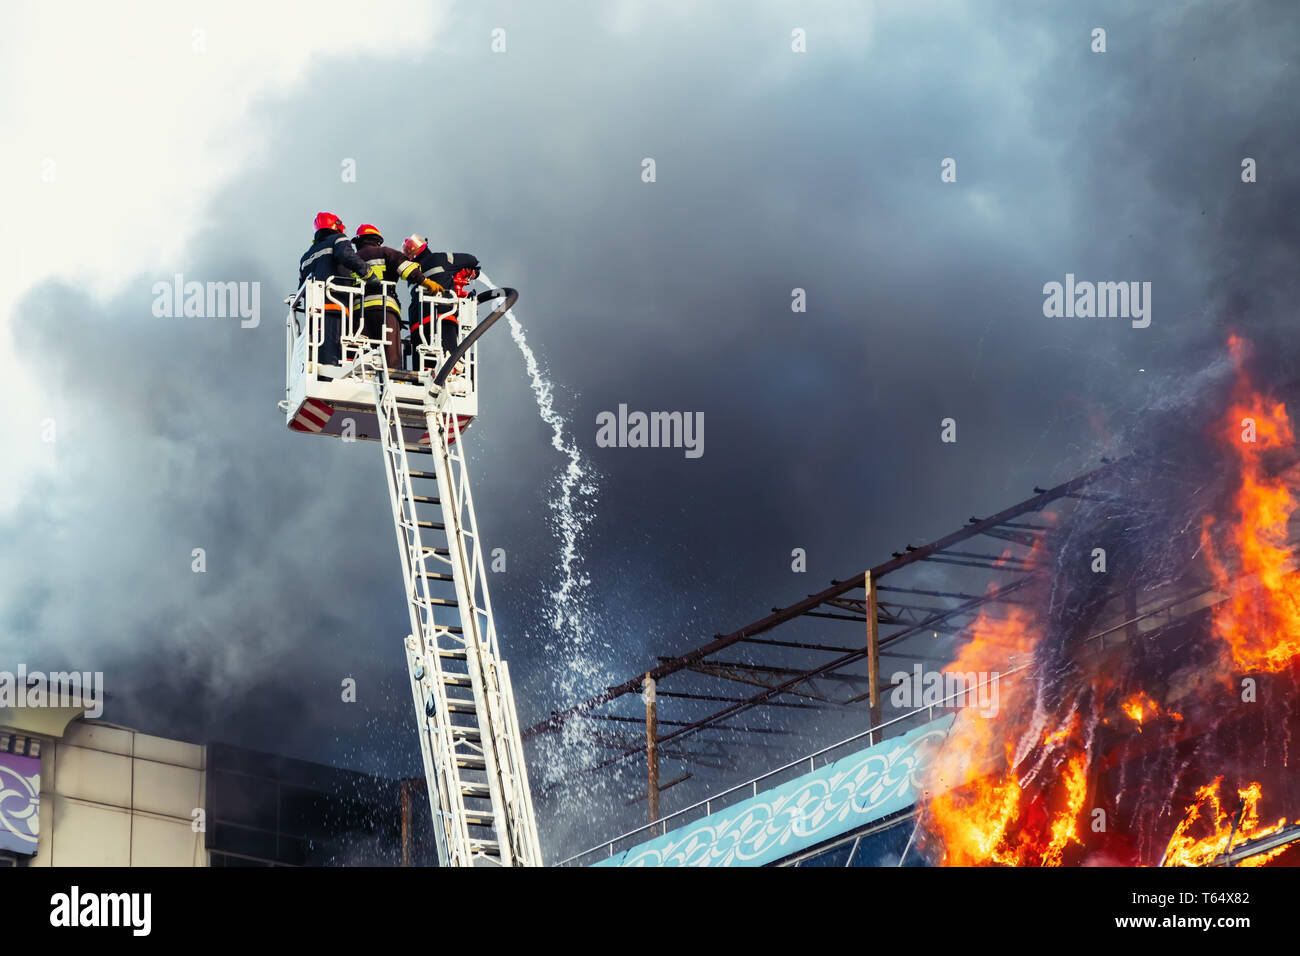 Firefighters extinguish a big fire - Stock Image